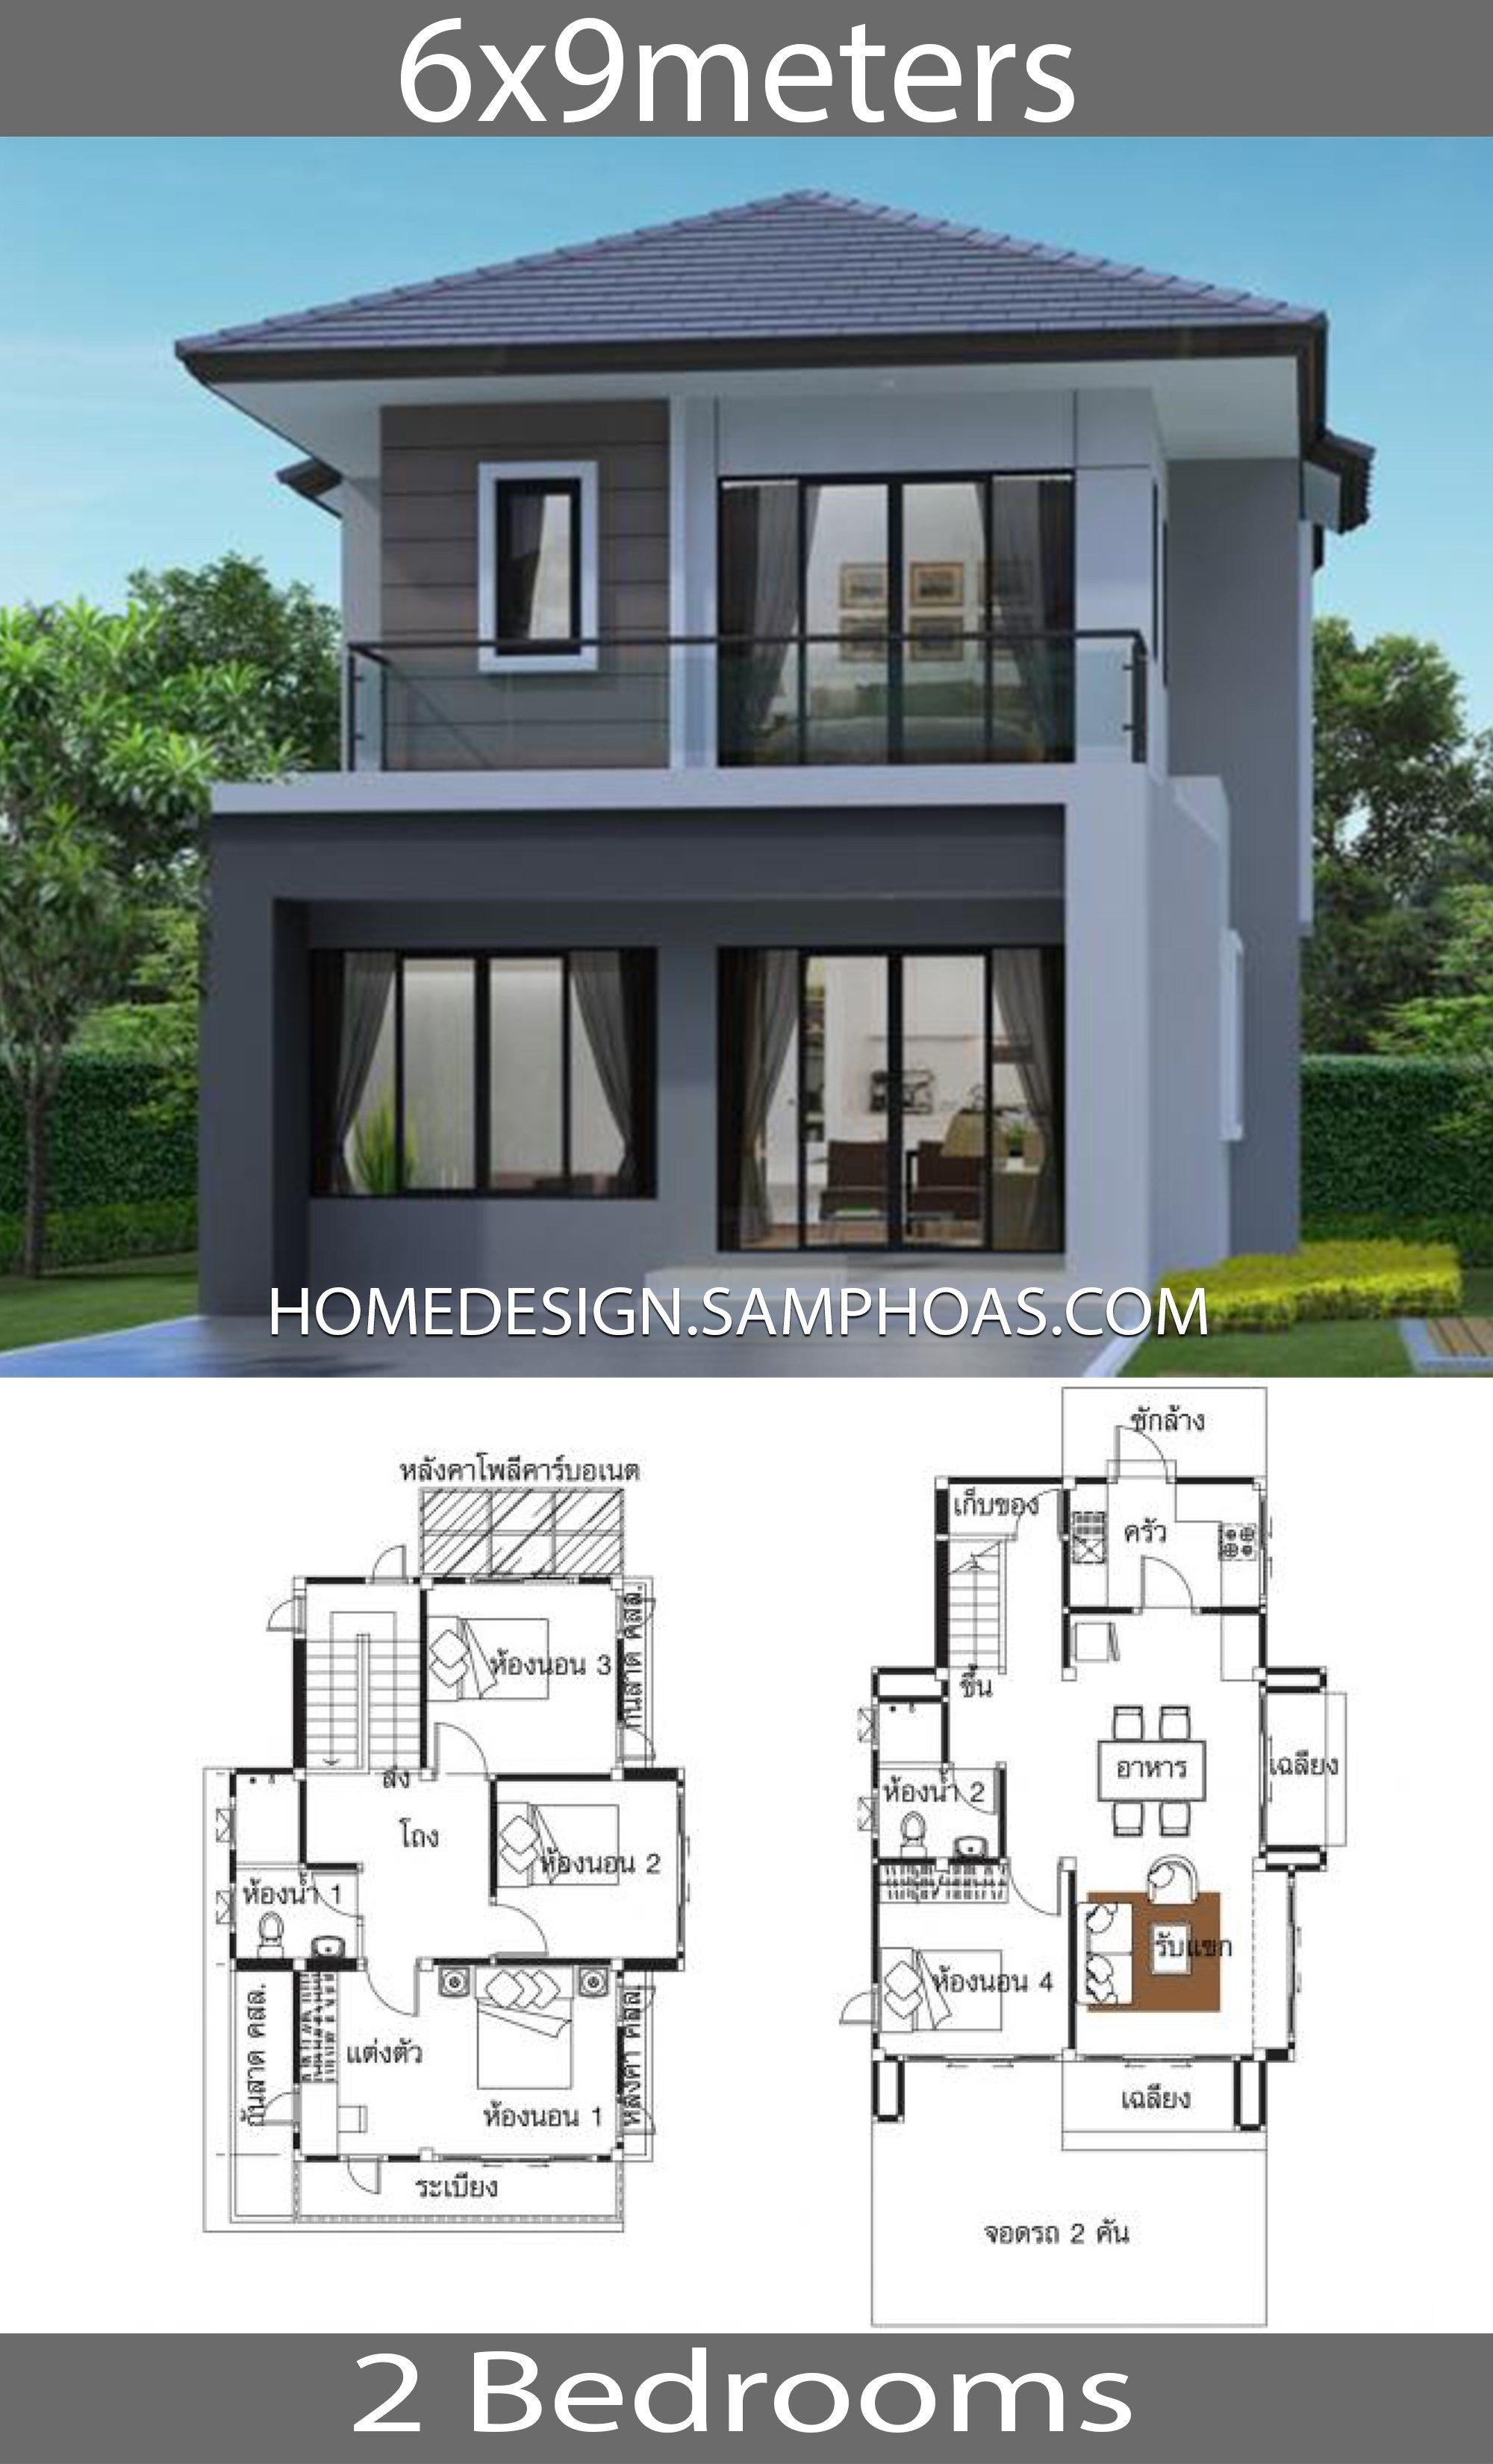 Small Home Plans 6x9m With 4 Bedrooms House Description Useful Space 170 Square Metersland A Small Modern House Plans House Construction Plan Model House Plan